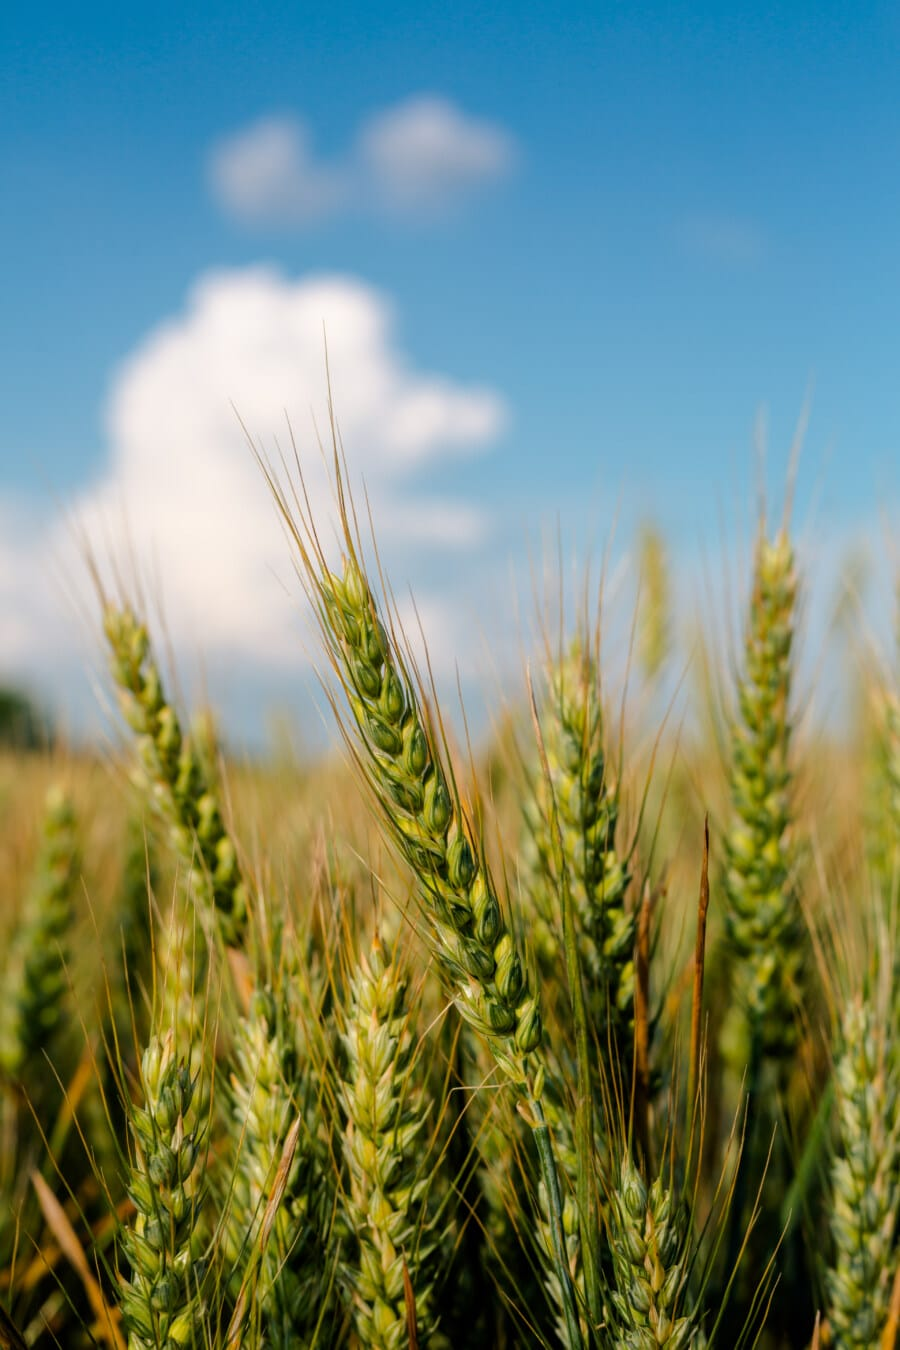 green, wheat, wheatfield, seed, close-up, grain, stem, cereal, field, summer